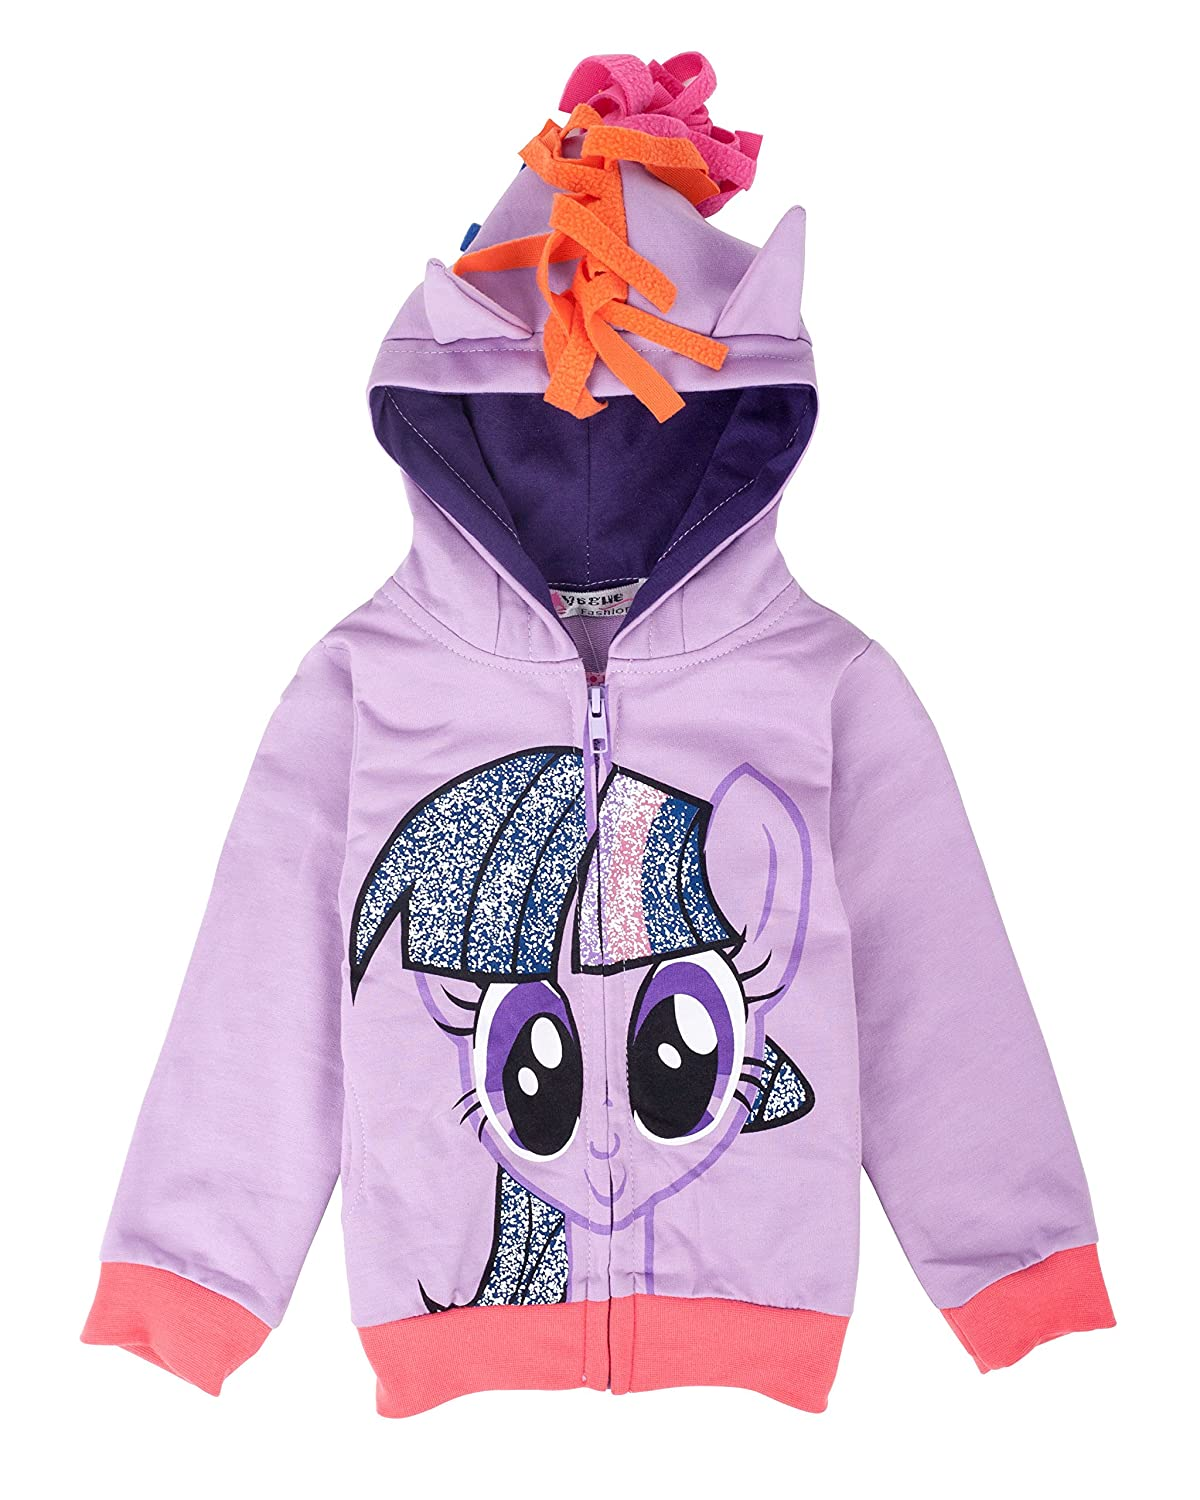 SummitLink Girls' Rainbow Dash Hoodie